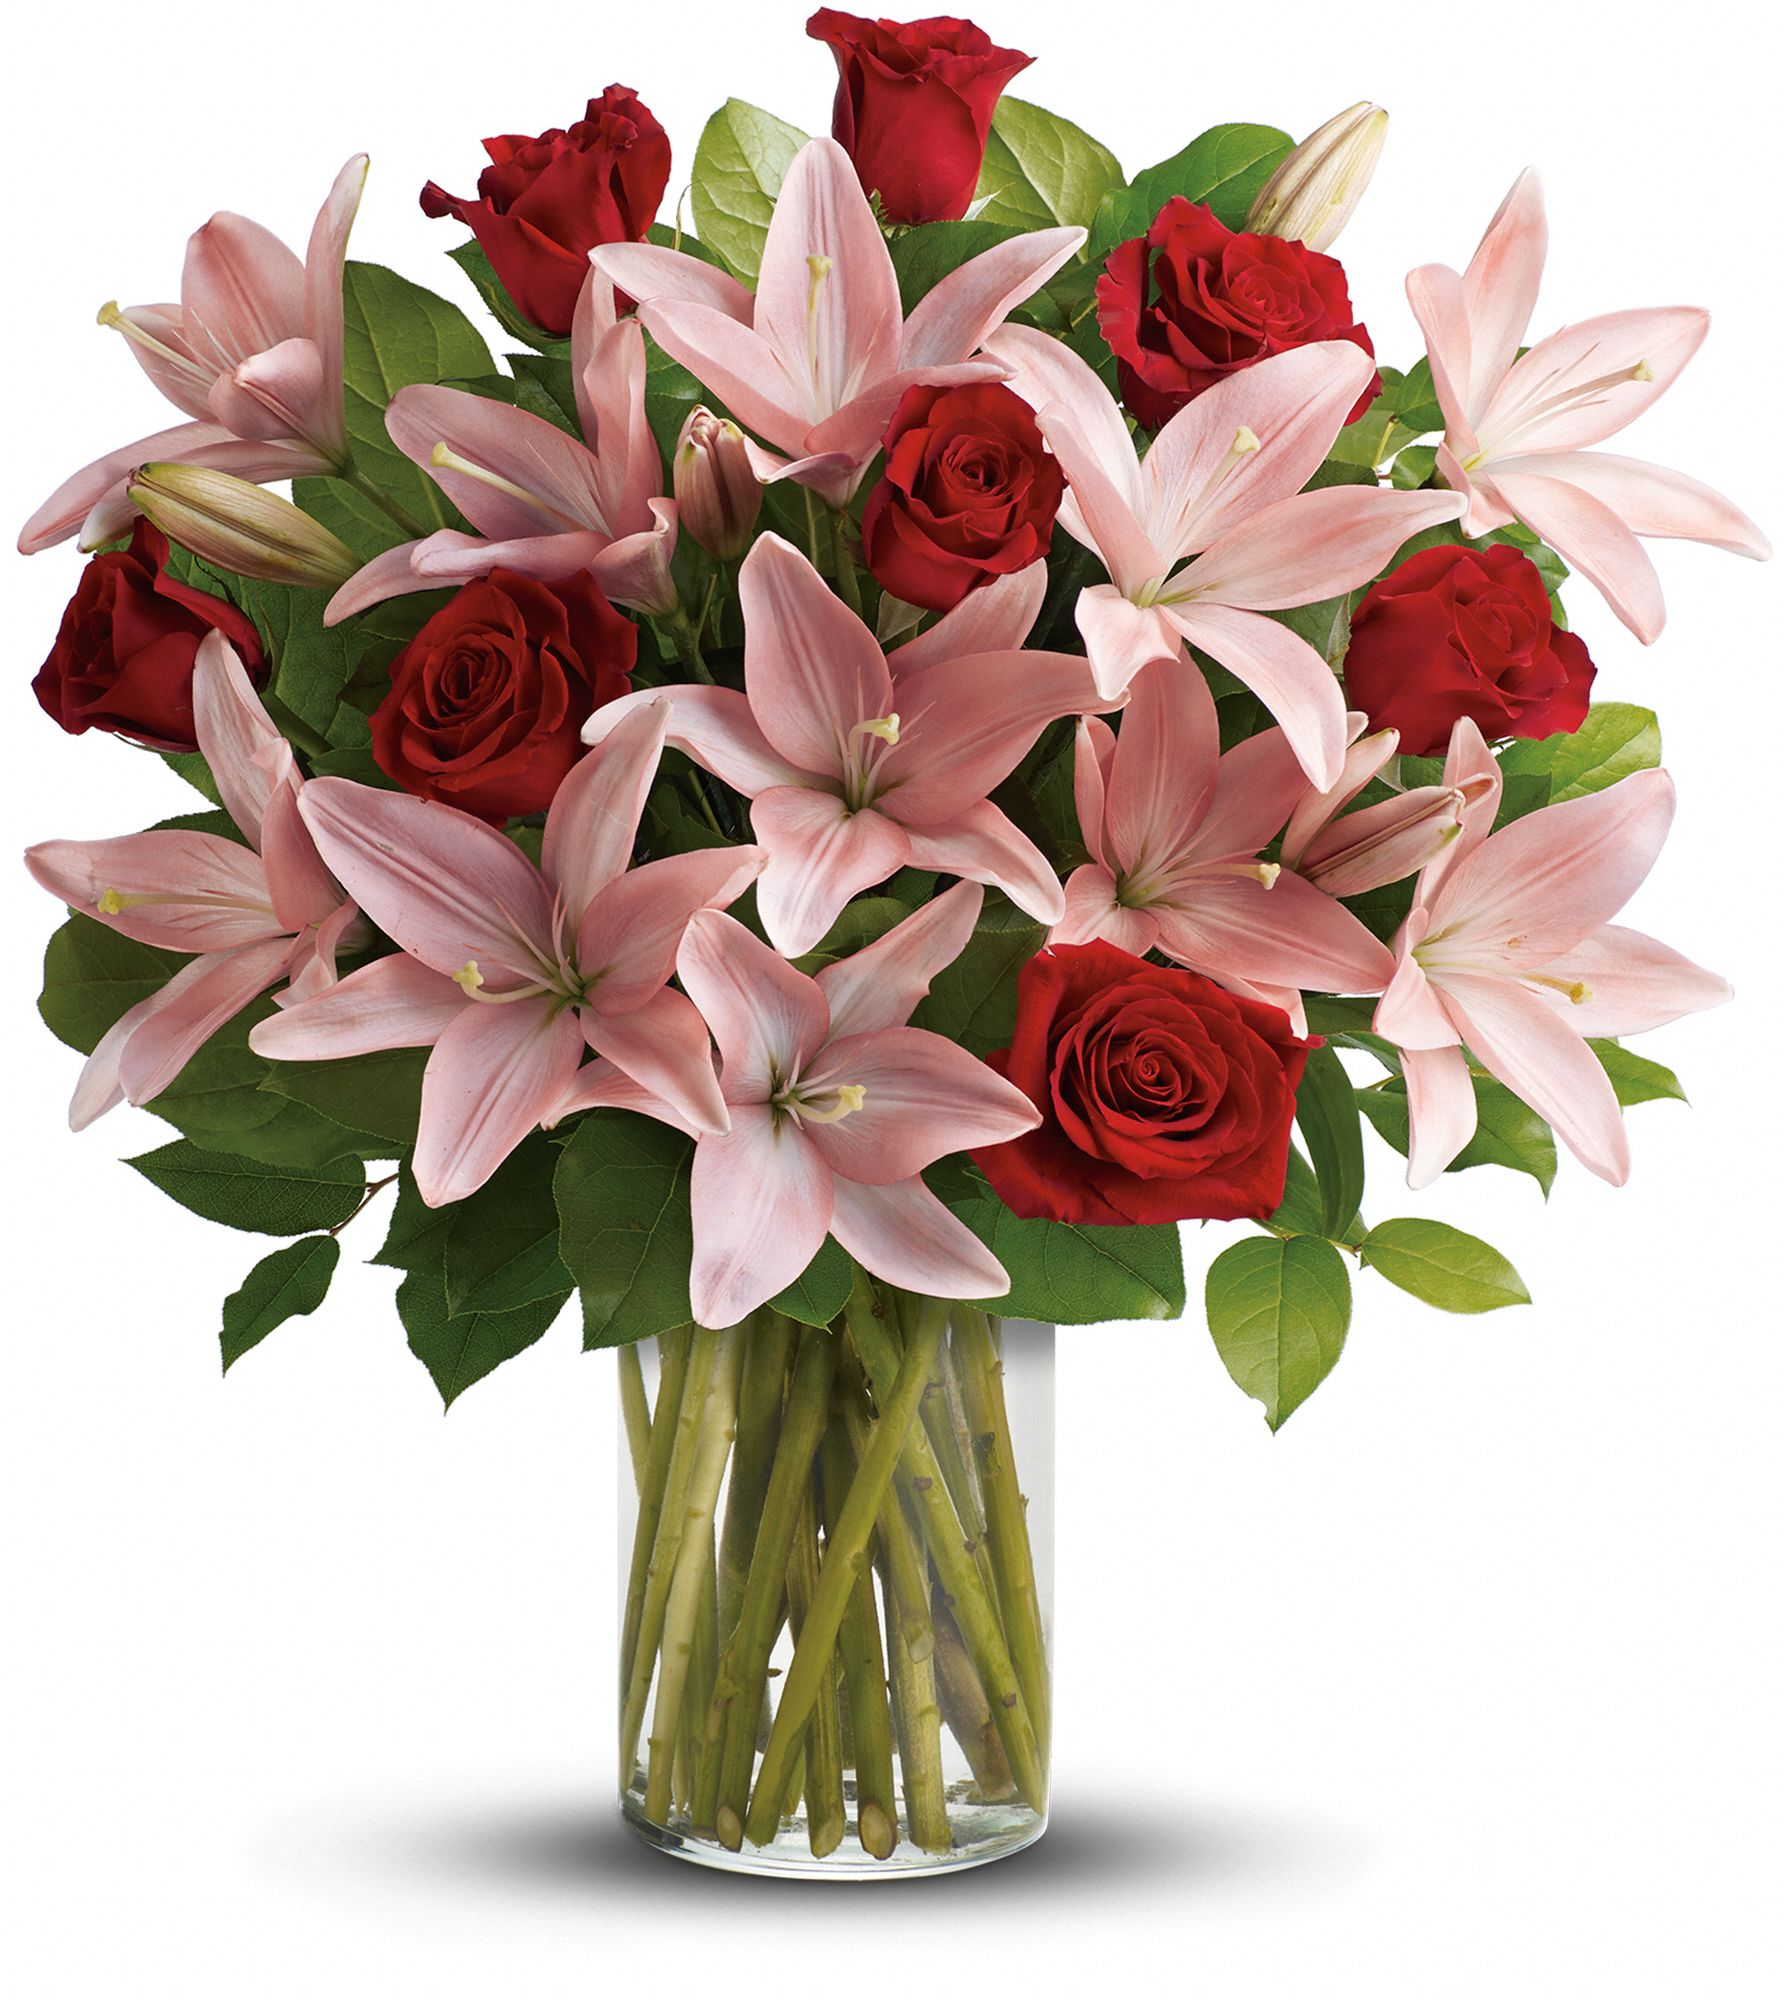 So Enchanting Bouquet - includes red roses, pink lilies and fresh lemon leaves.